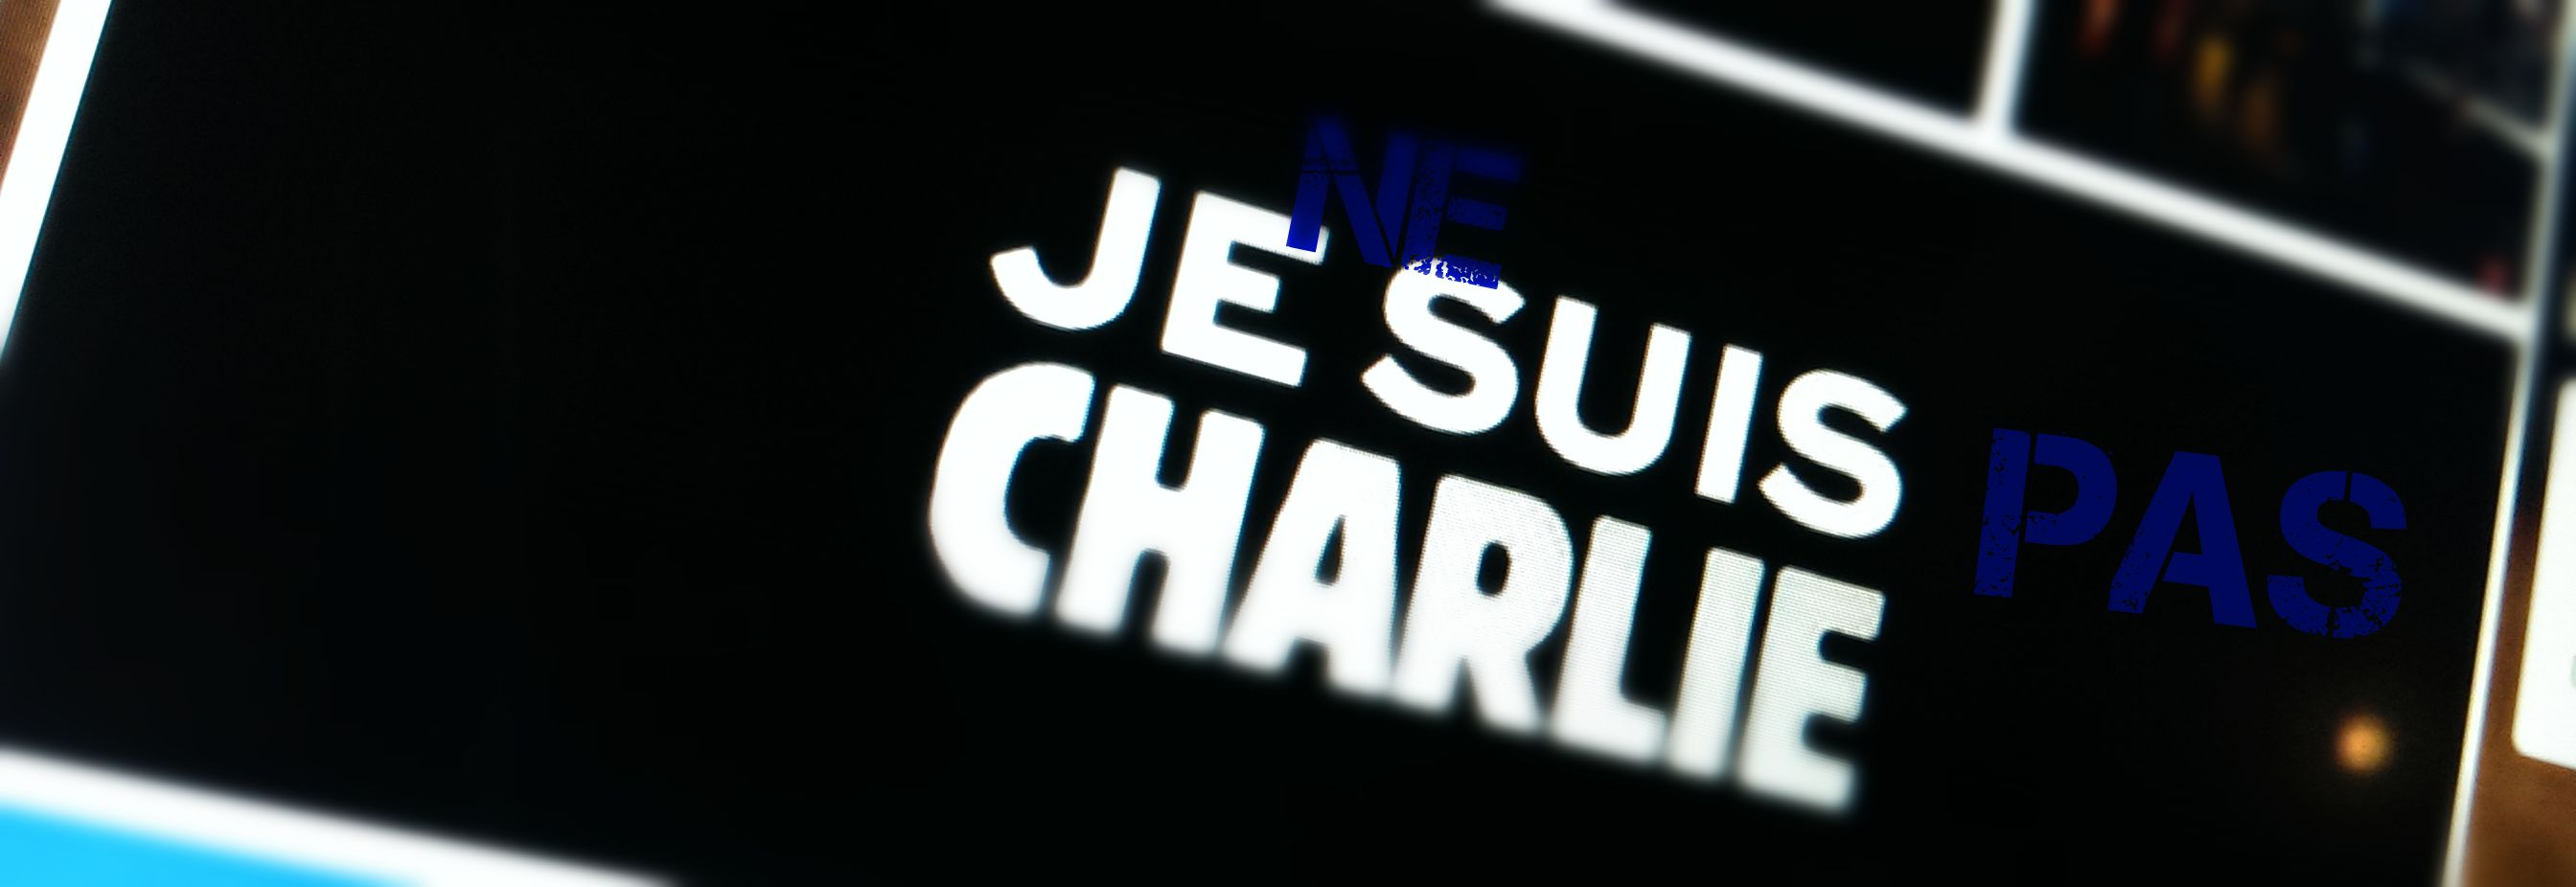 jenesuispascharlie